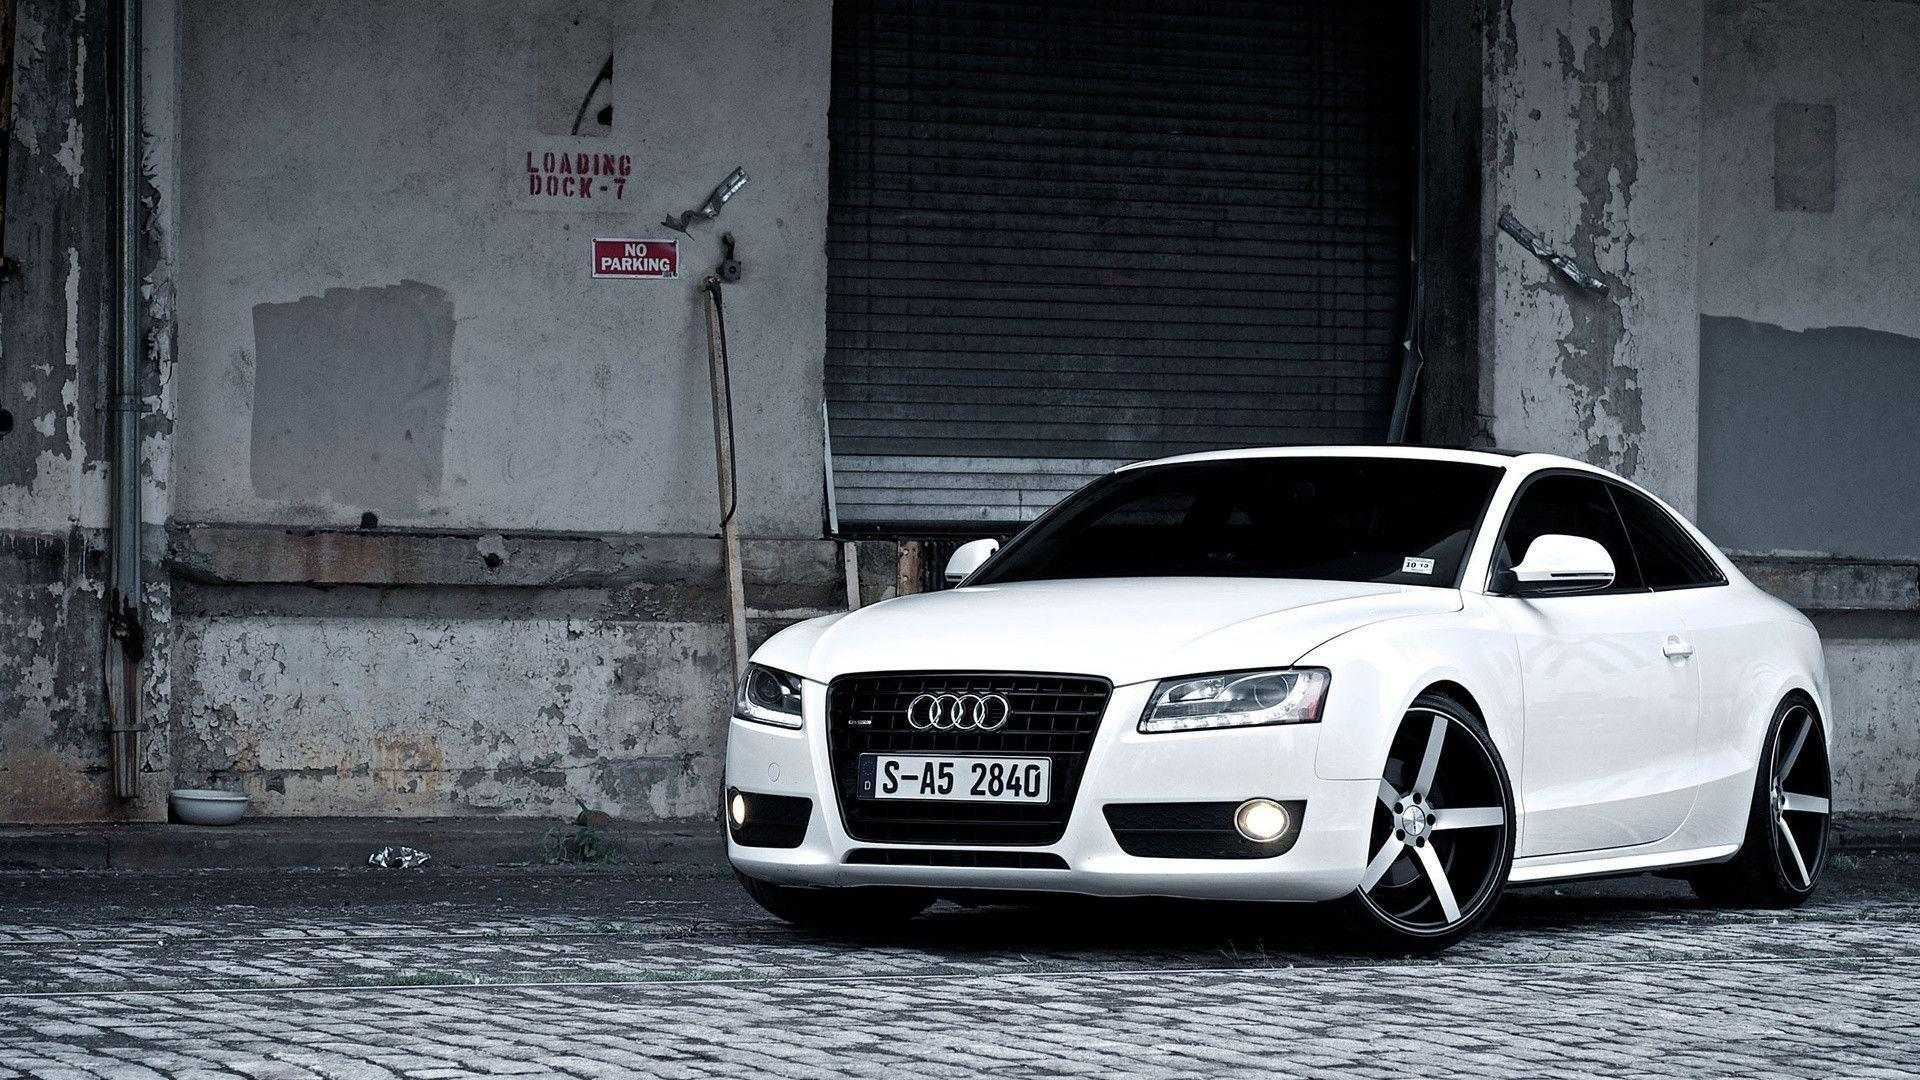 Audi A5 Wallpapers Top Free Audi A5 Backgrounds Wallpaperaccess